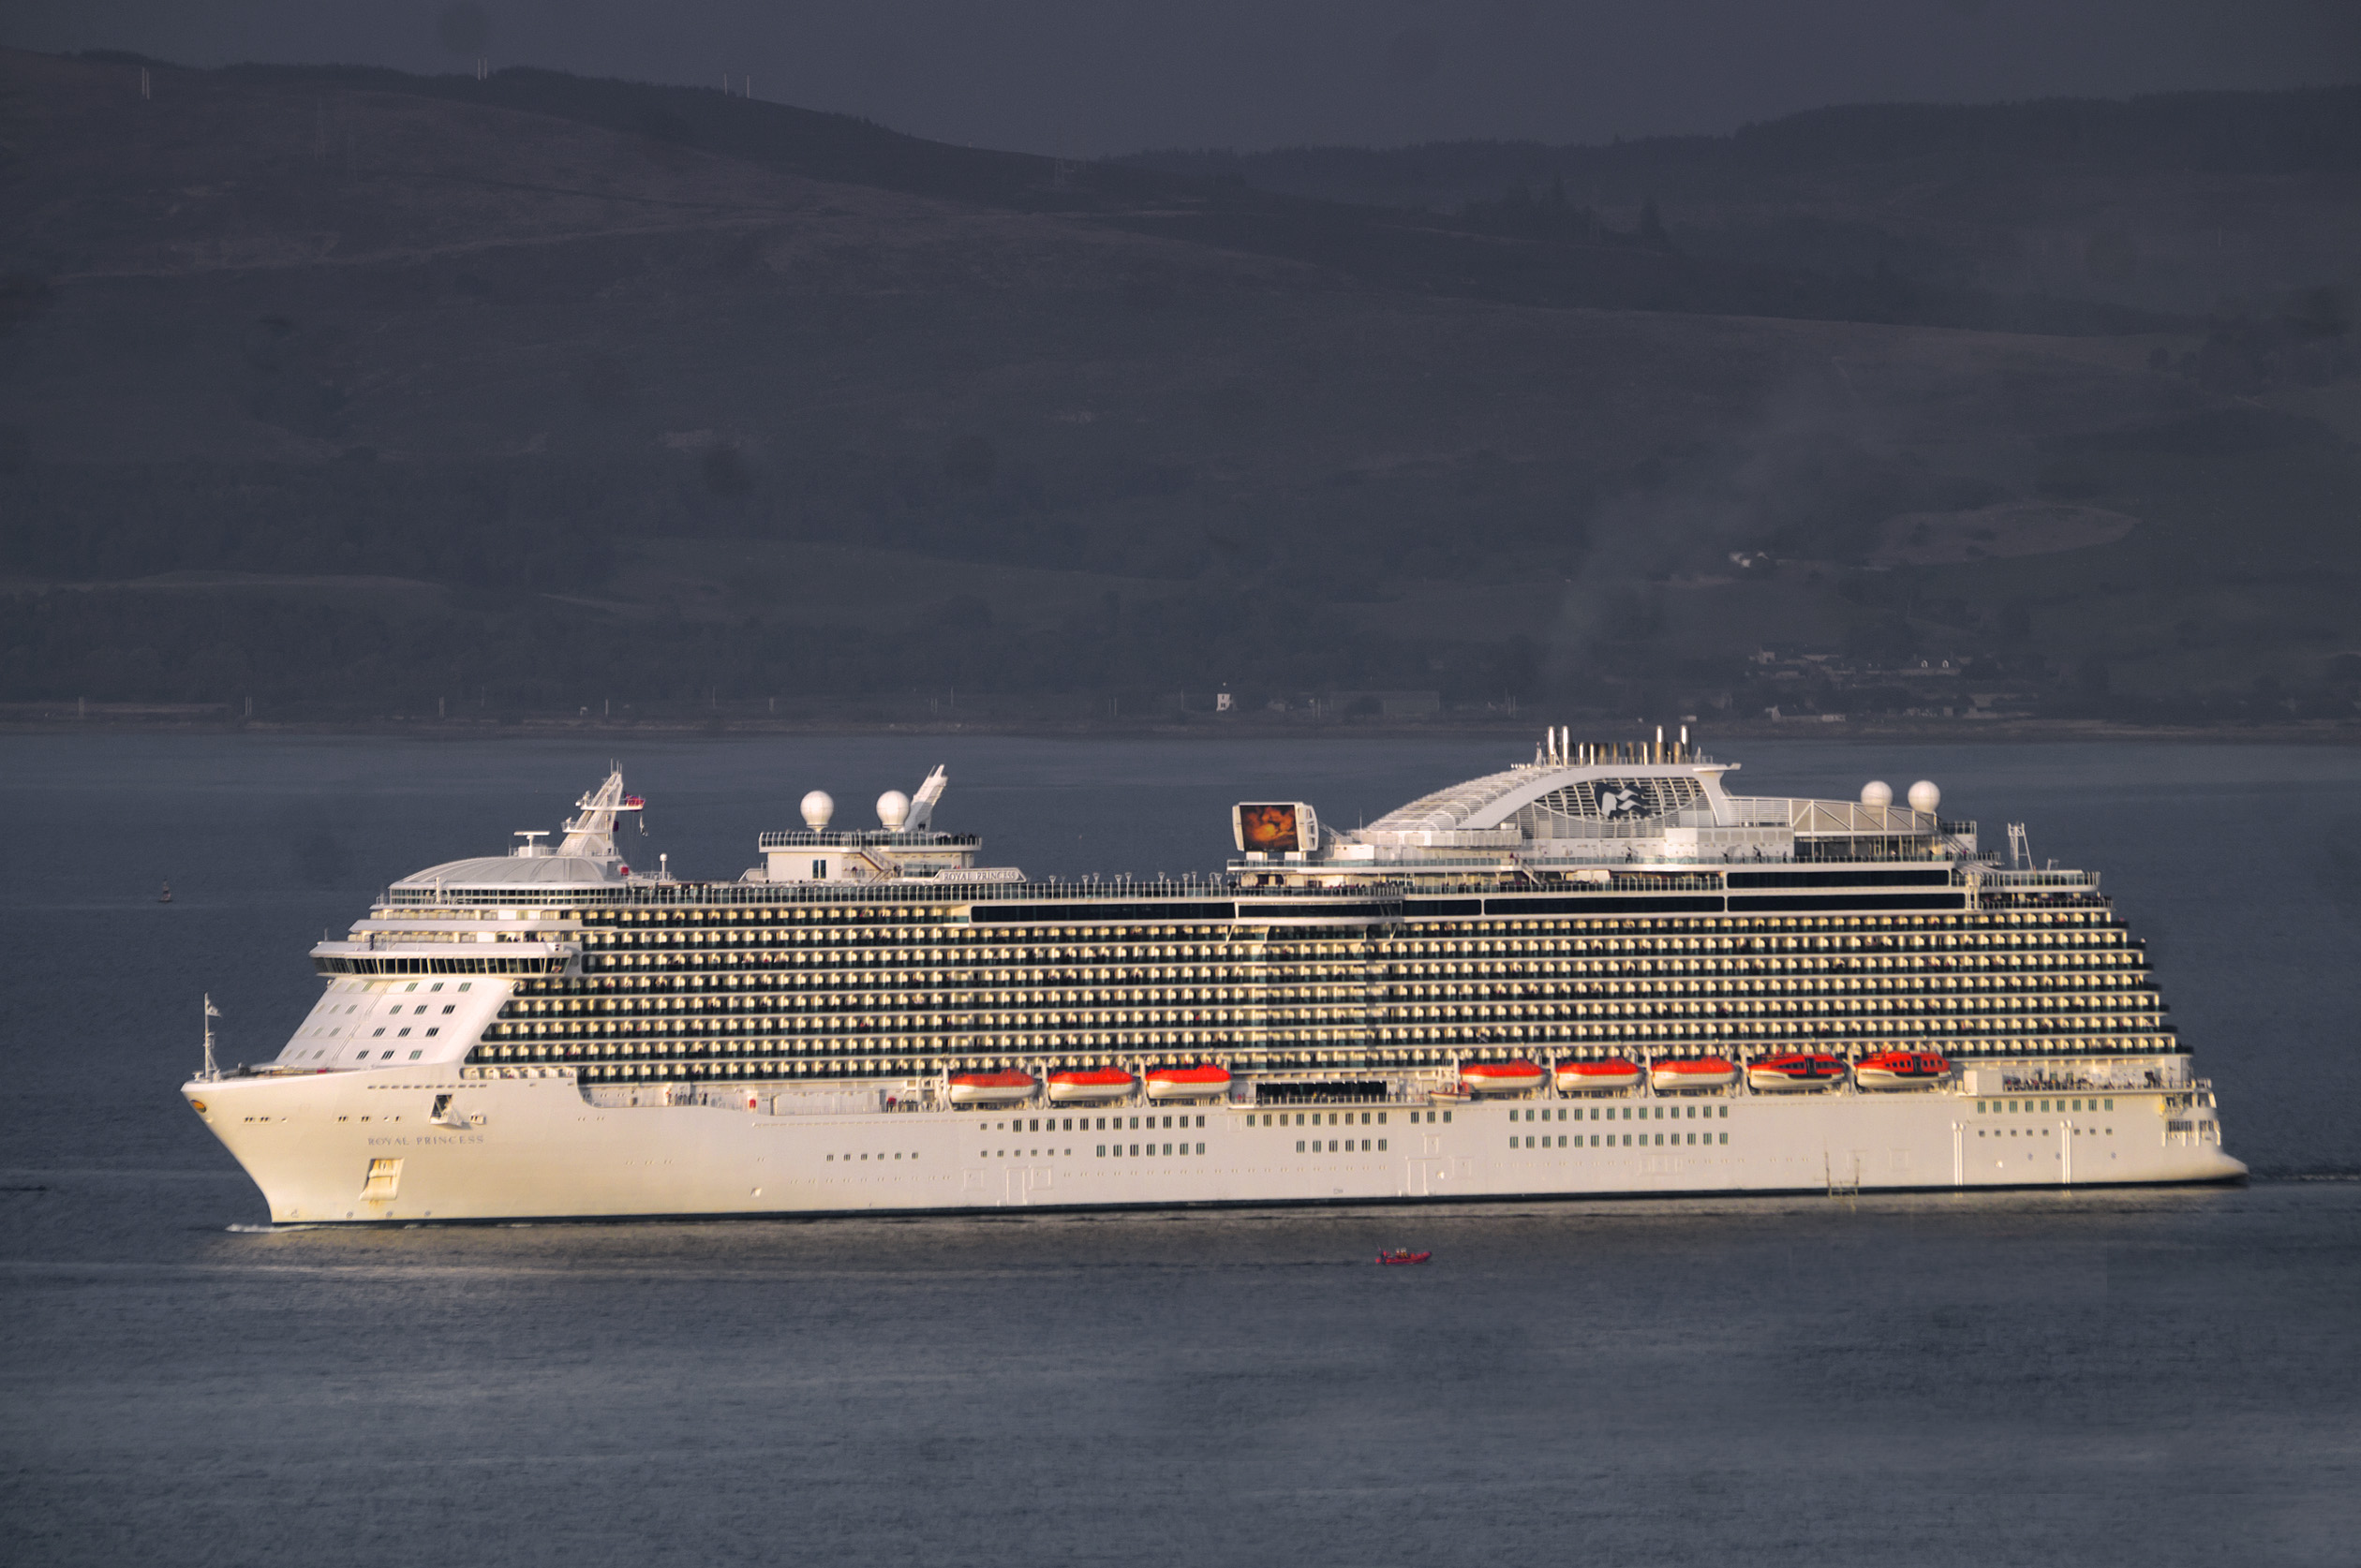 Royal princess ship photos